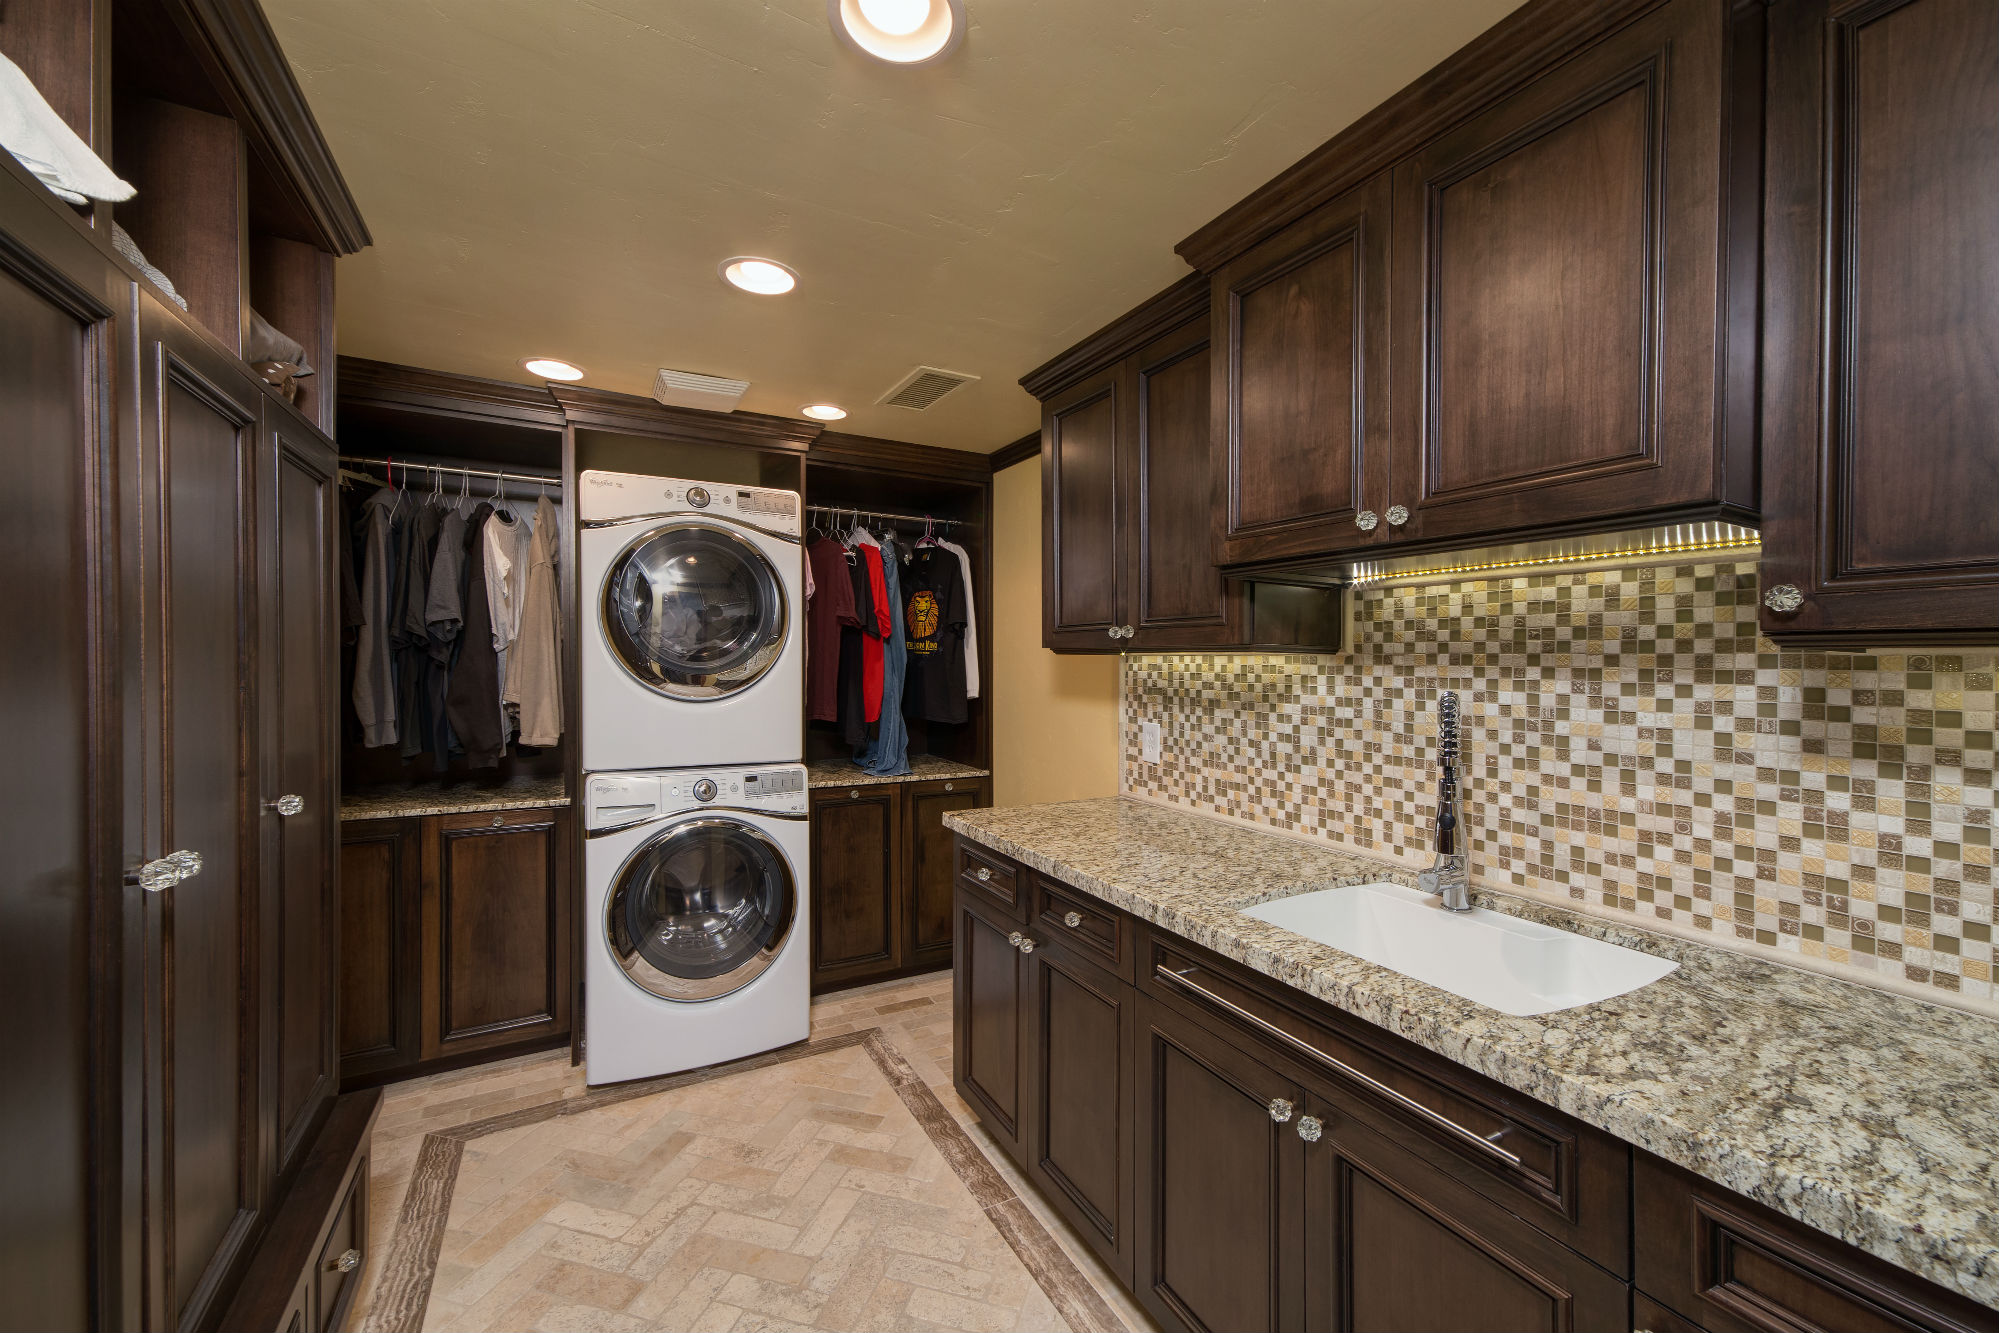 Kitchen Utility Room Ideas Five Laundry Room Remodel Must Haves Remodeling